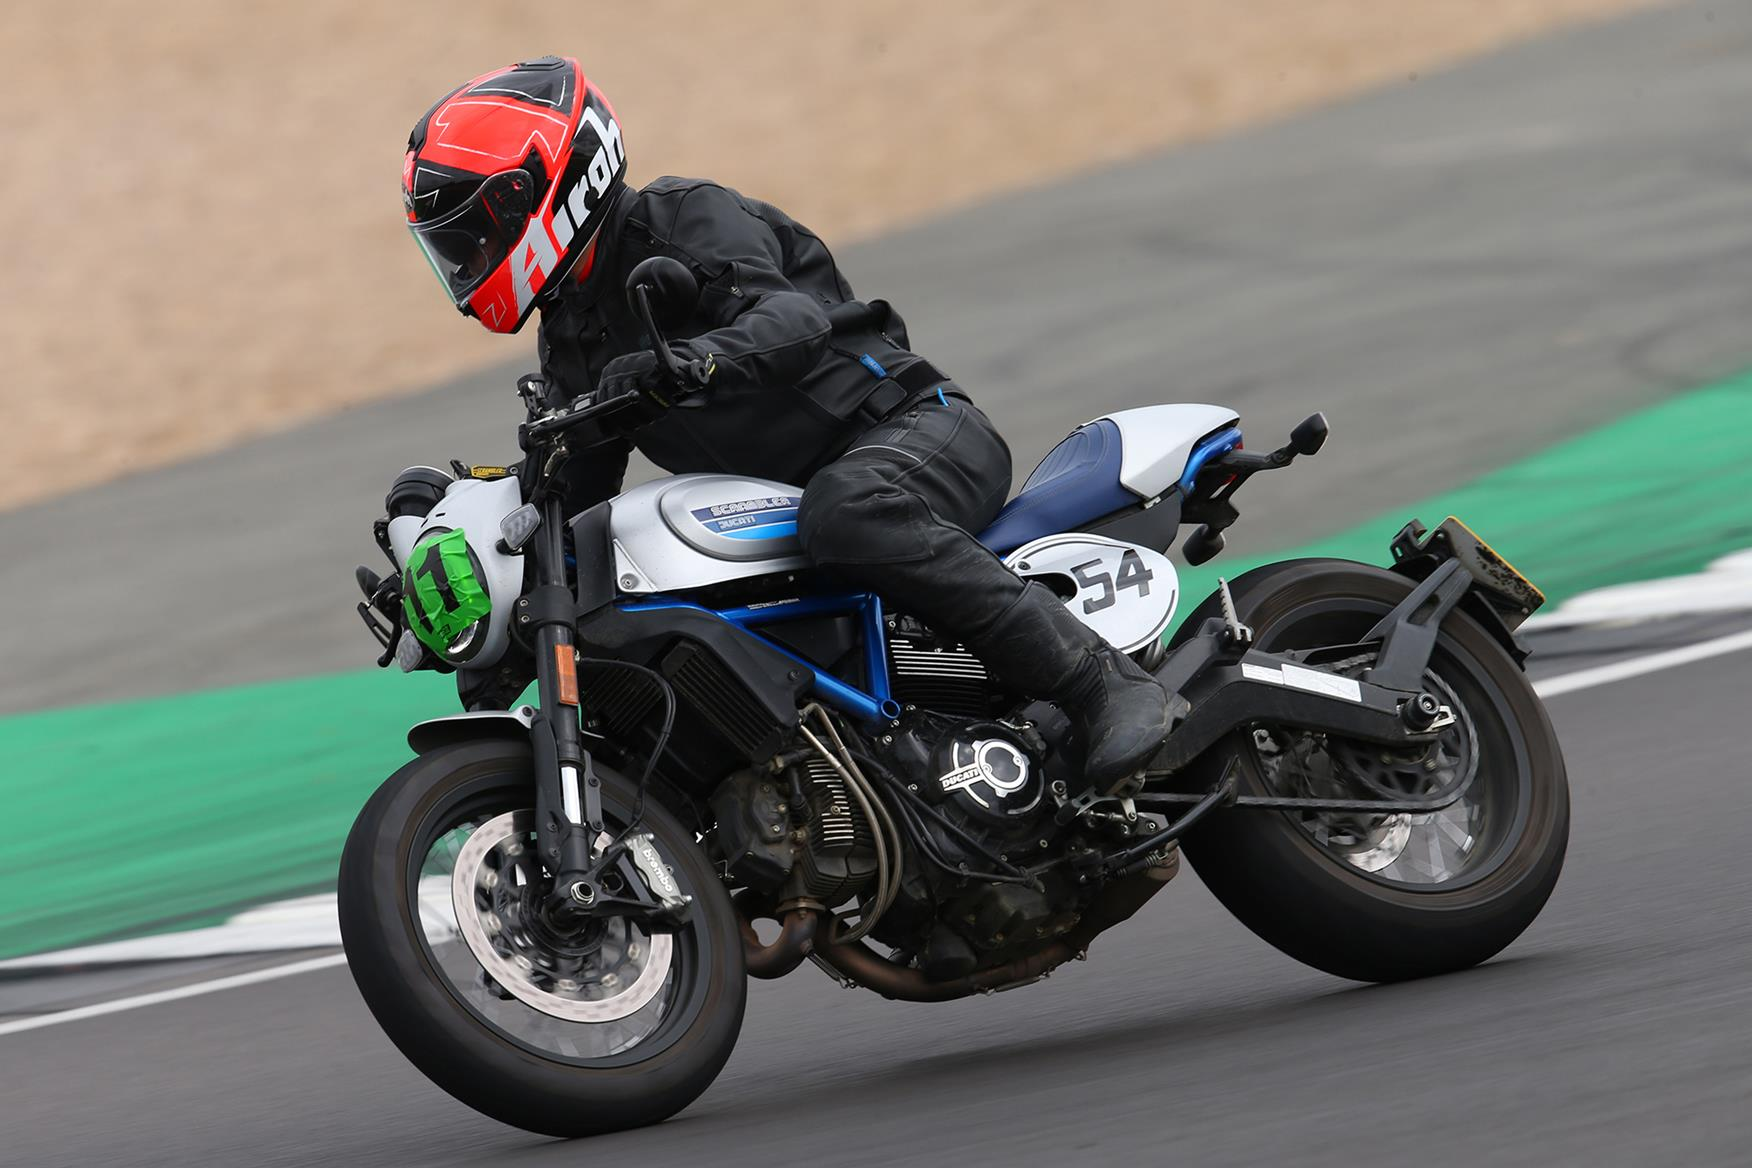 Taking the Ducati Scrambler Cafe Racer on track